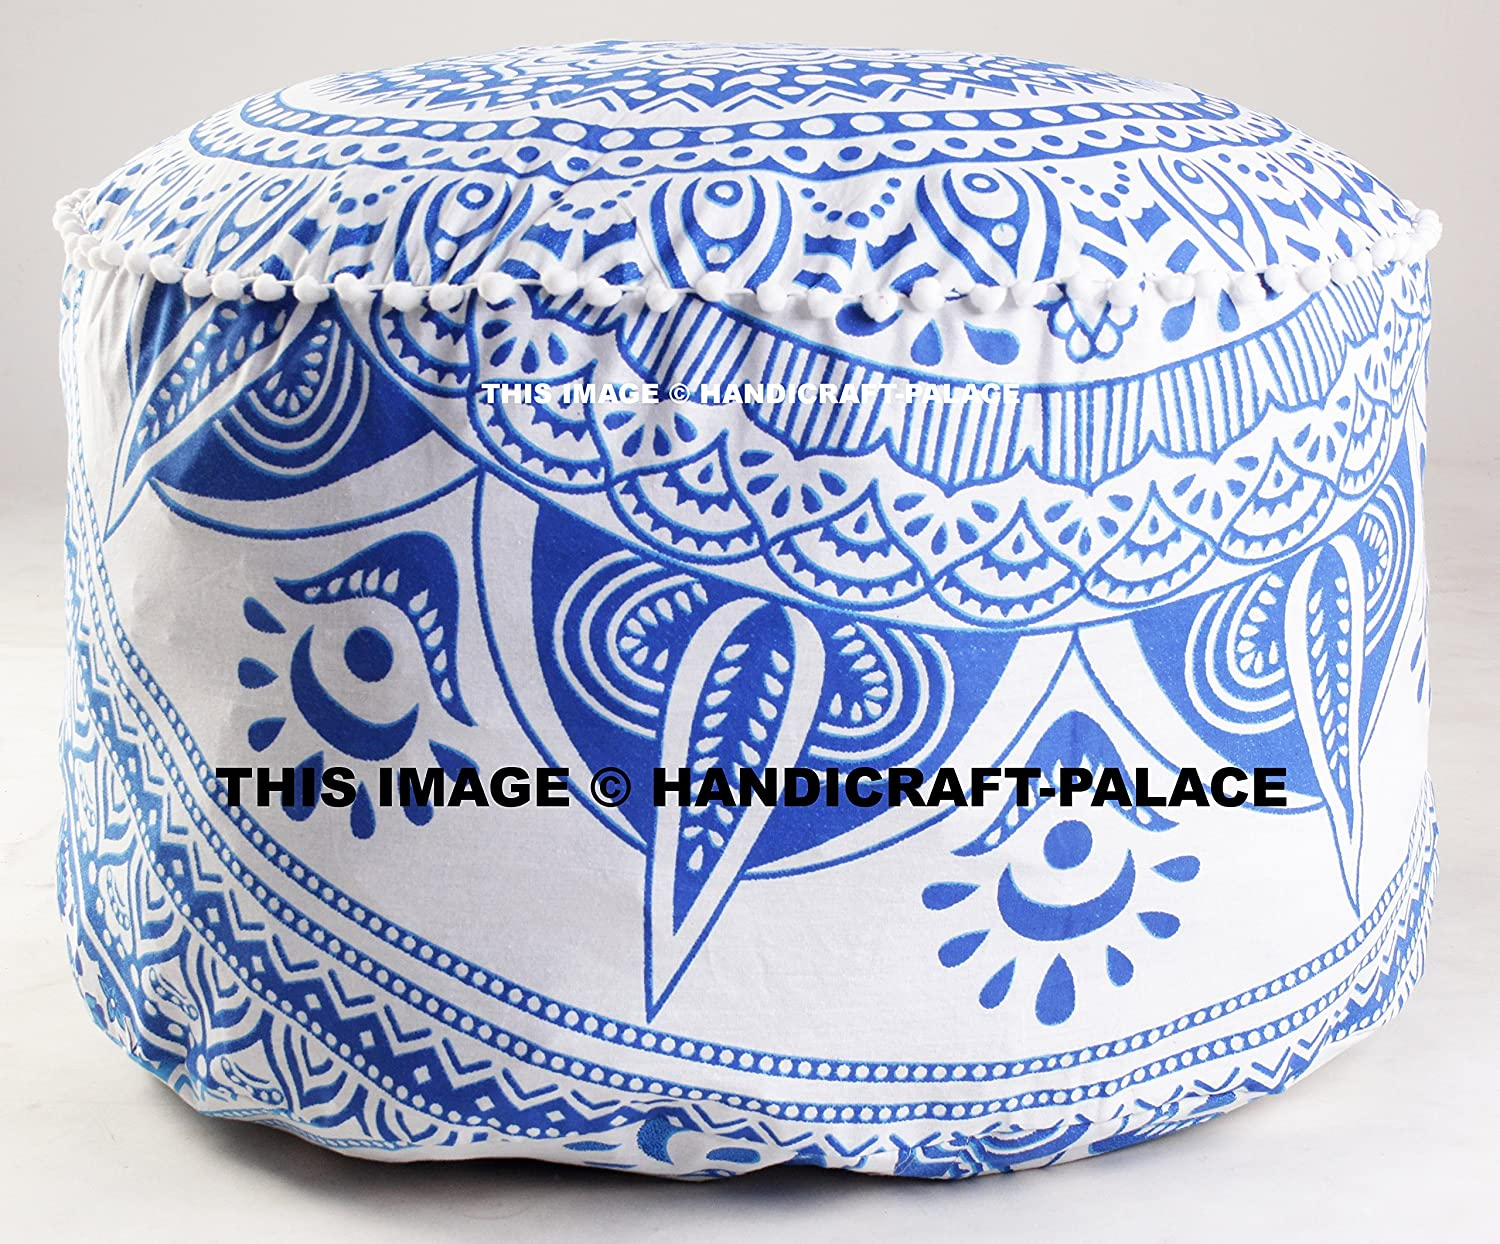 Indian Ethnic Ombre Mandala Ottoman Pouf Cover Seating Furniture Round Footstool ottoman Poufs Size 24 x 14 inches Sold By Handicraft-Palace MOS-20